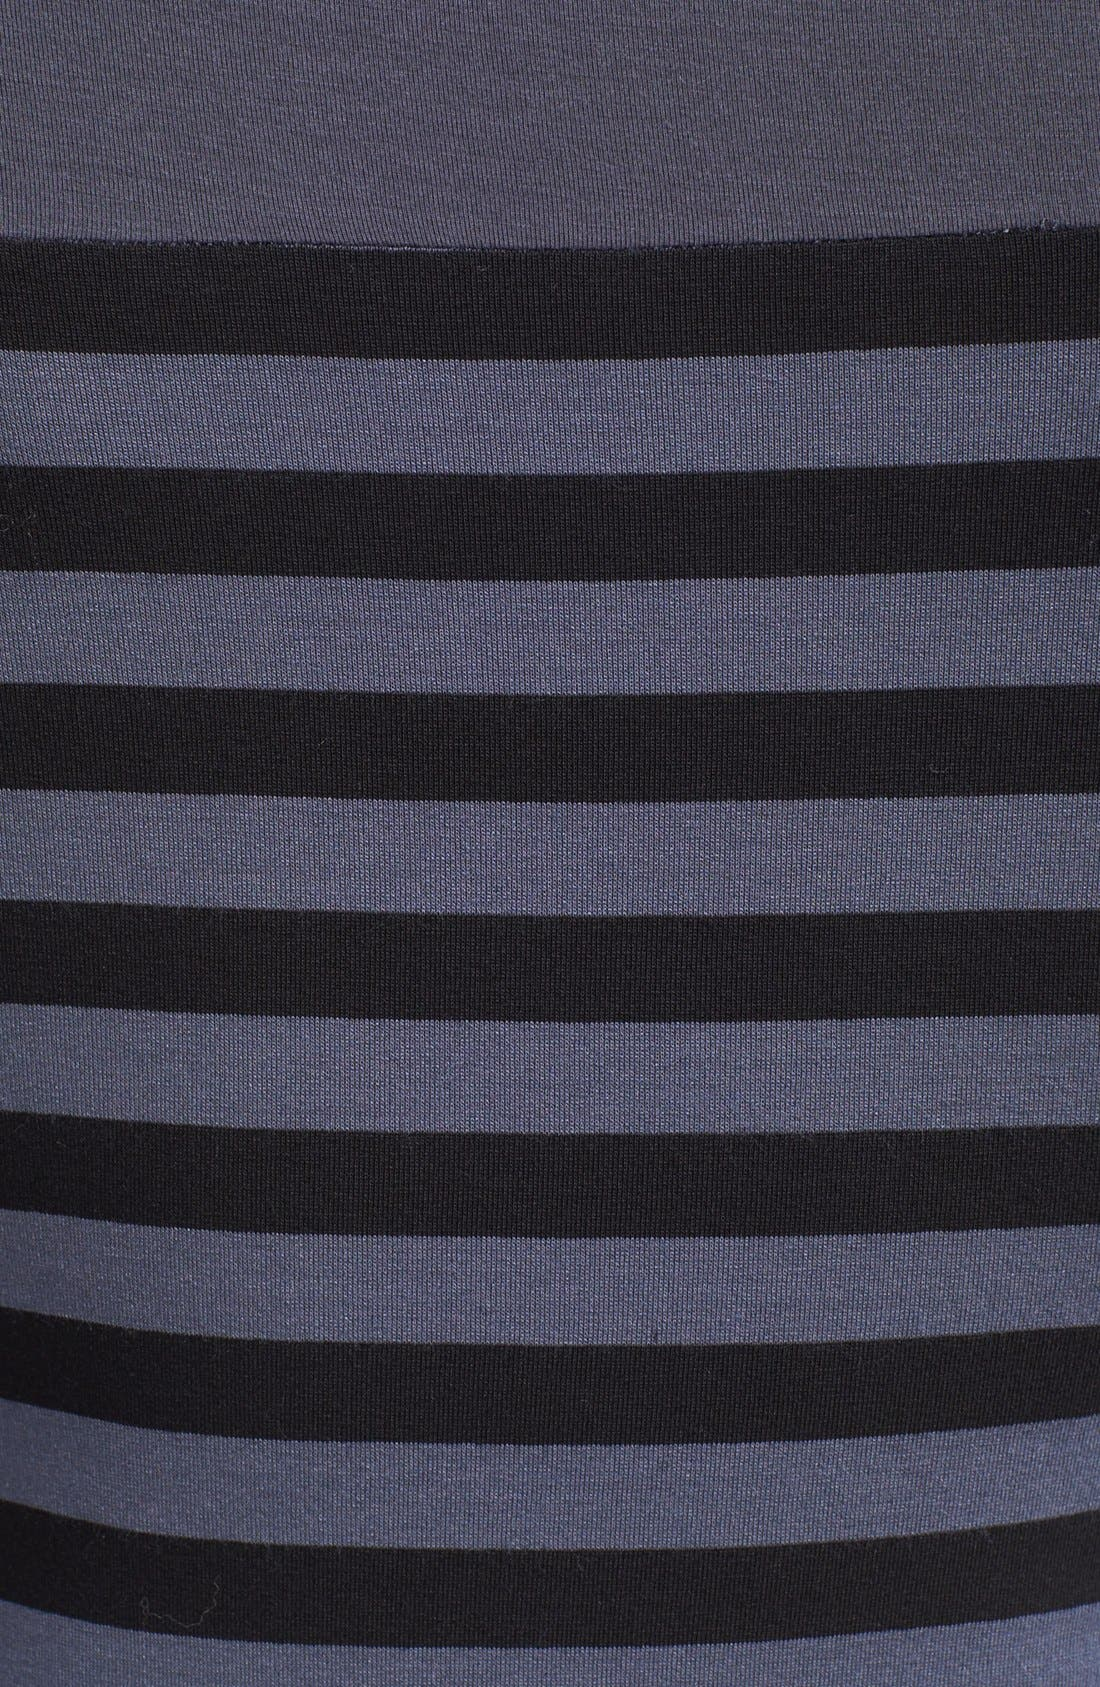 Alternate Image 3  - Bailey 44 'Text Me' Stripe Tee